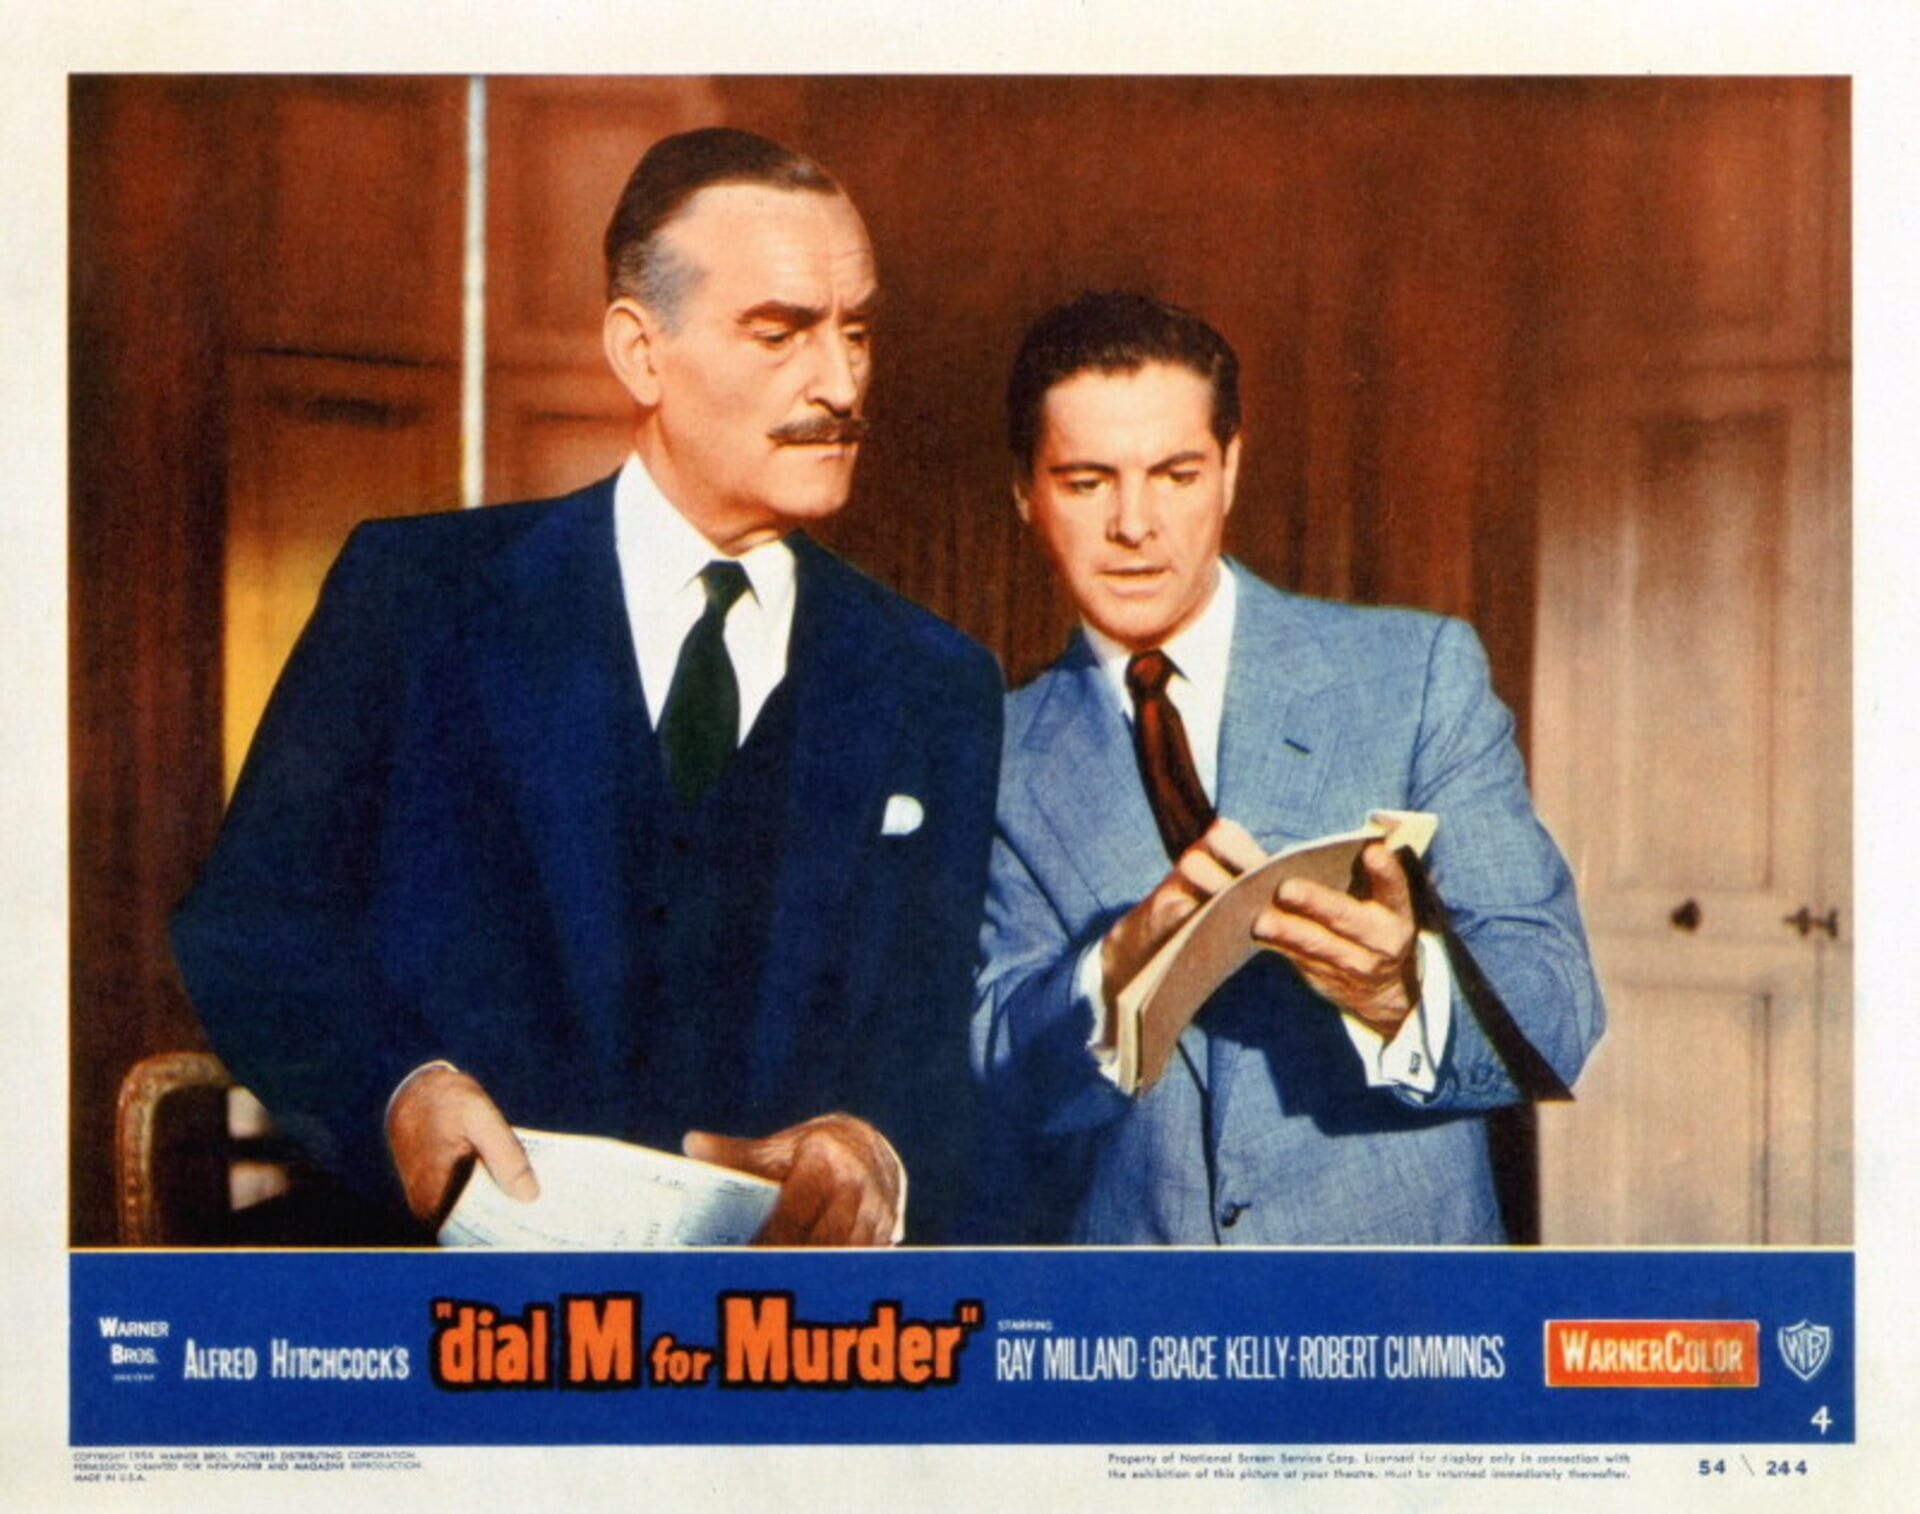 Dial M for Murder - Poster 4